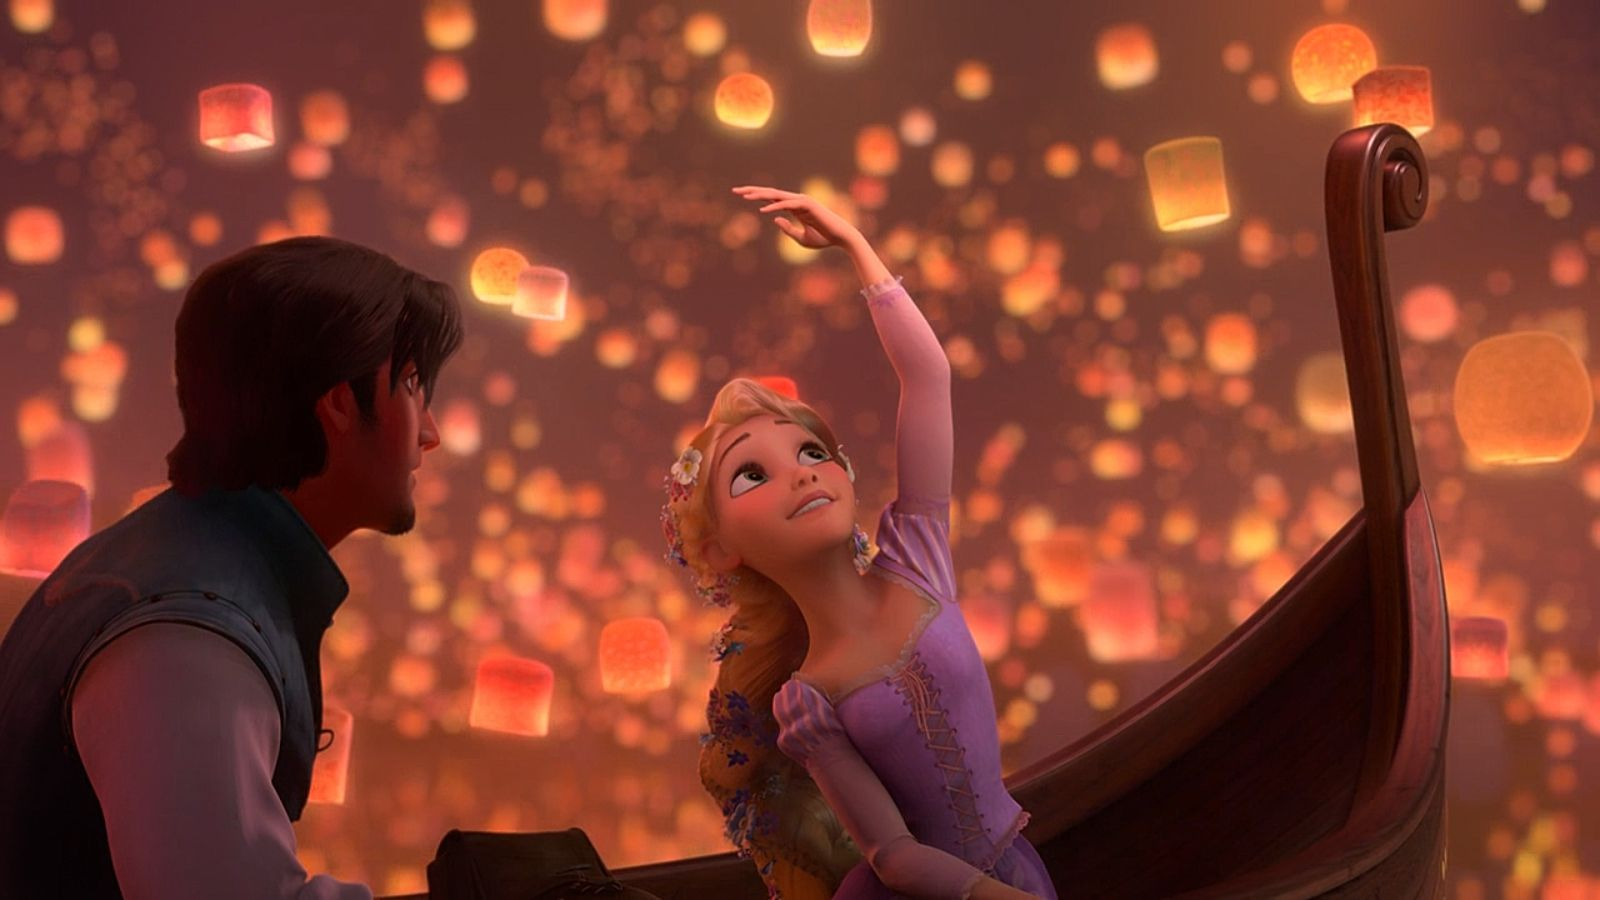 Cartoon Disney Tangled Wallpaper Download HD